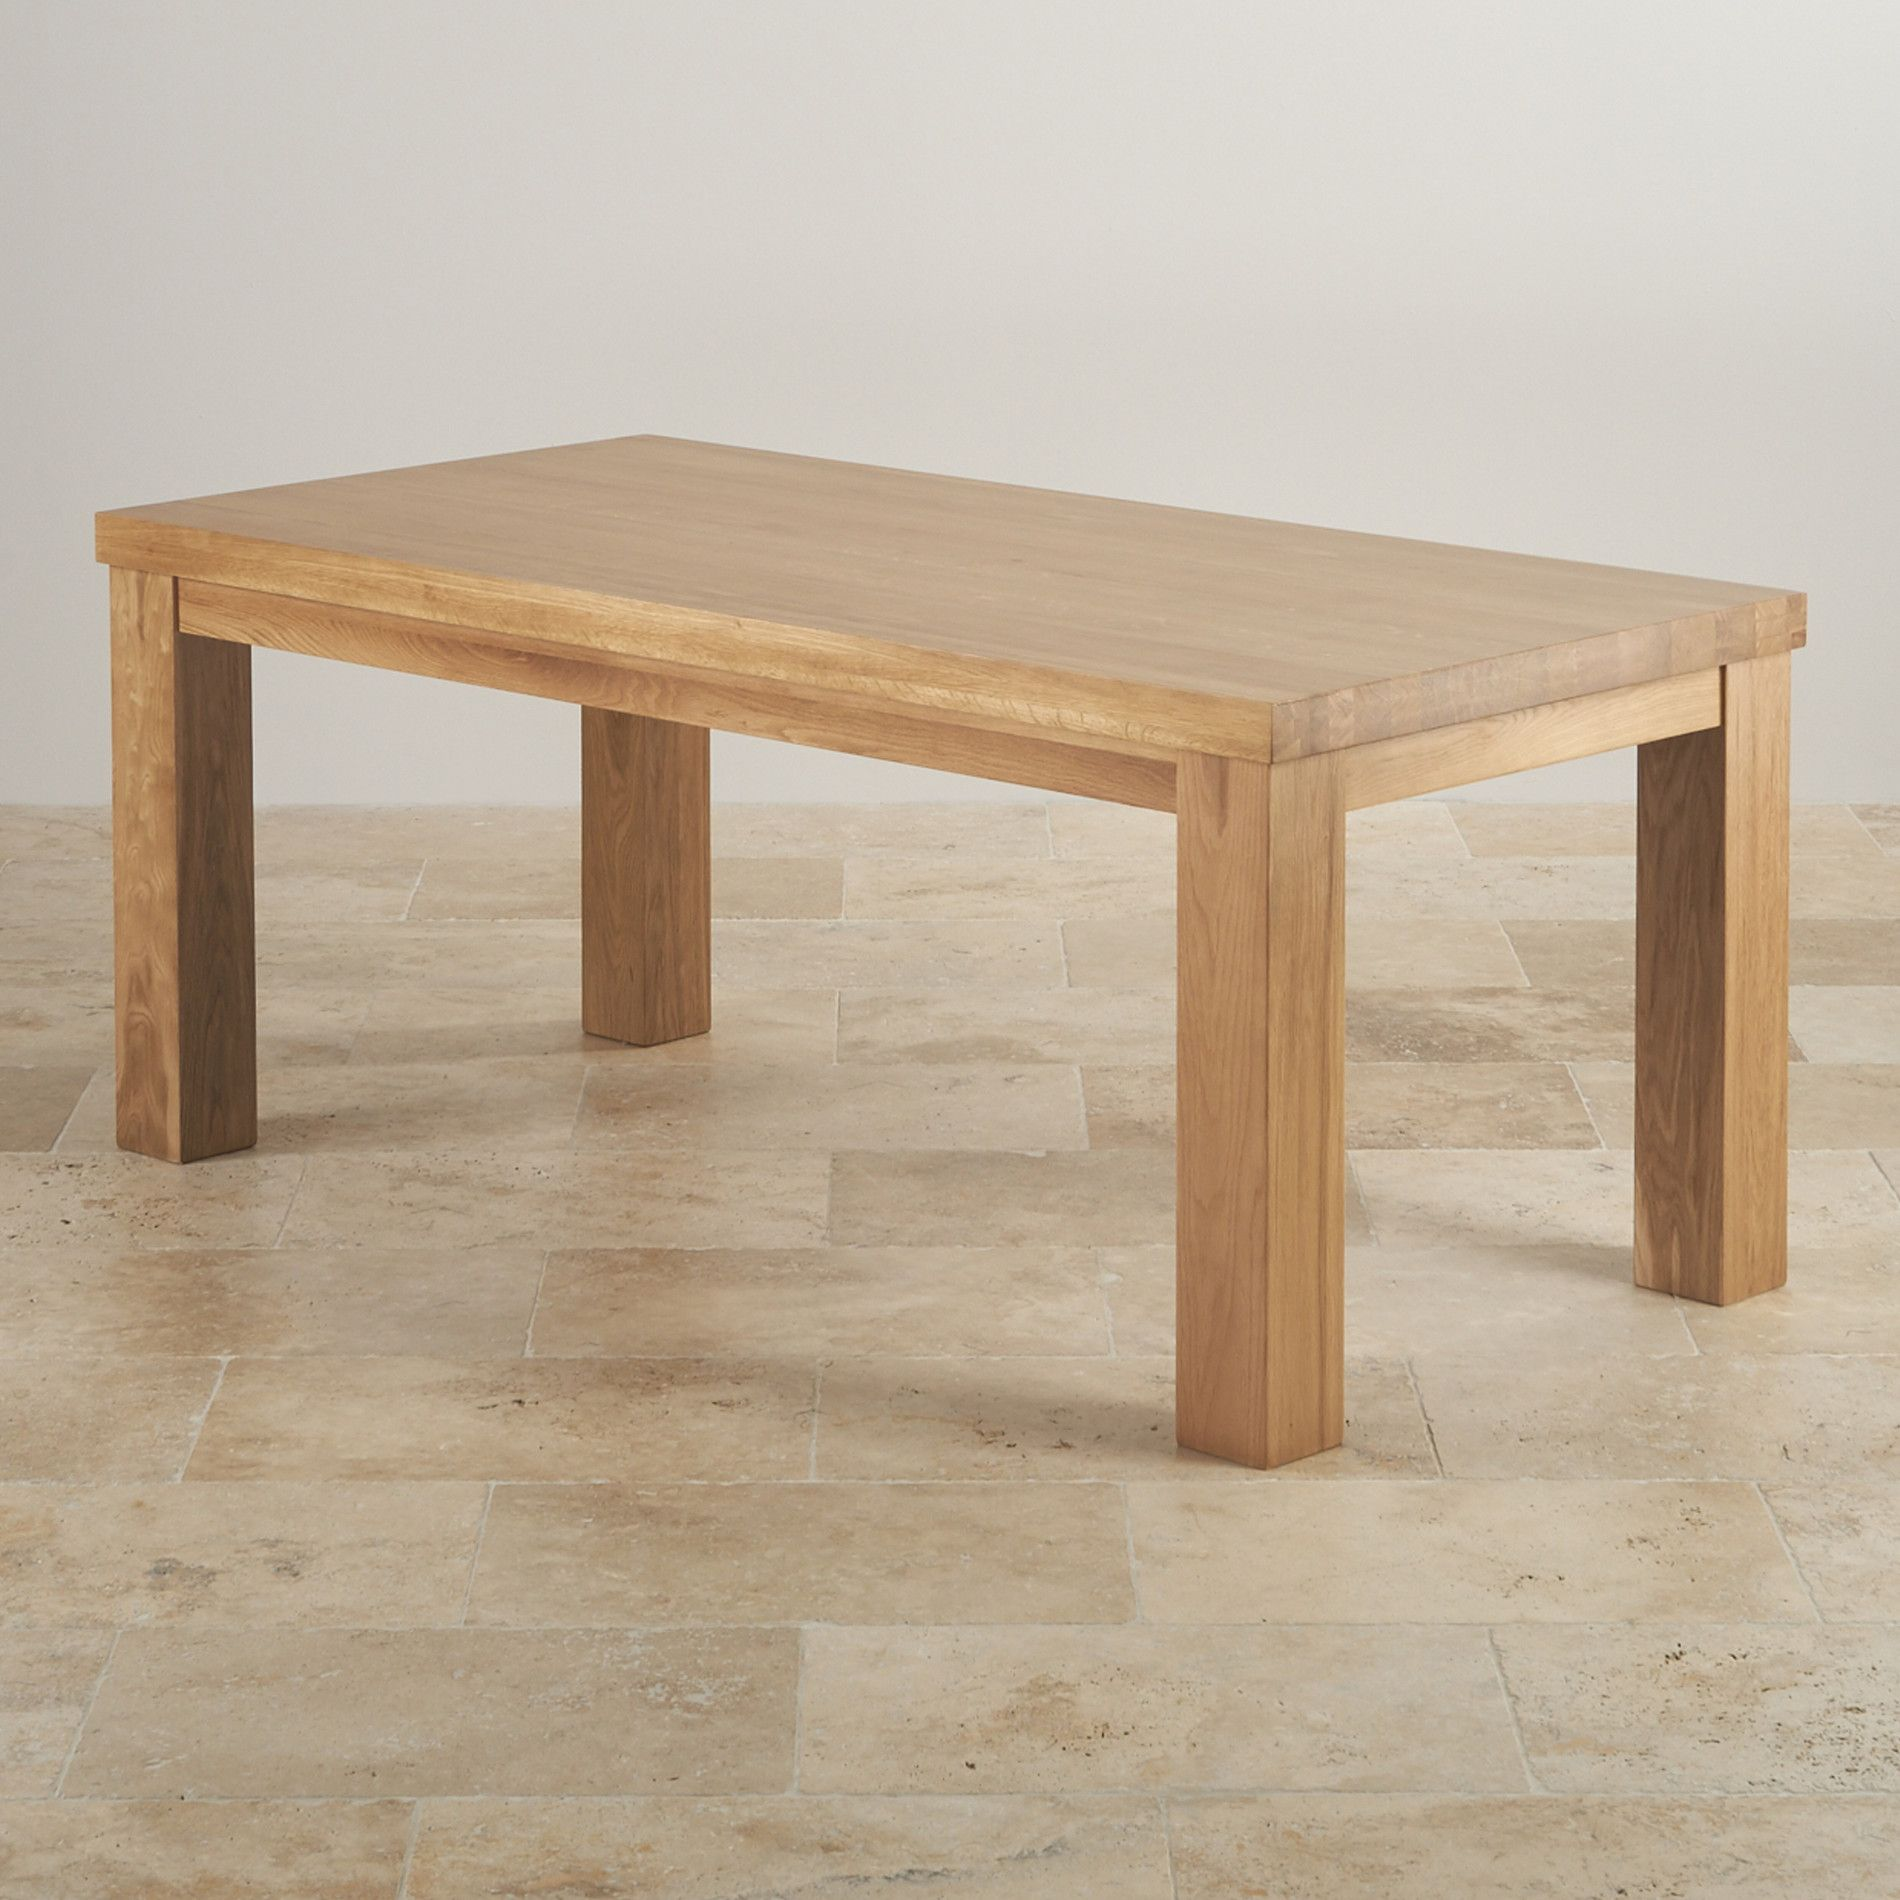 Wood dining tables contemporary chunky solid oak table rustic round butterfly extending